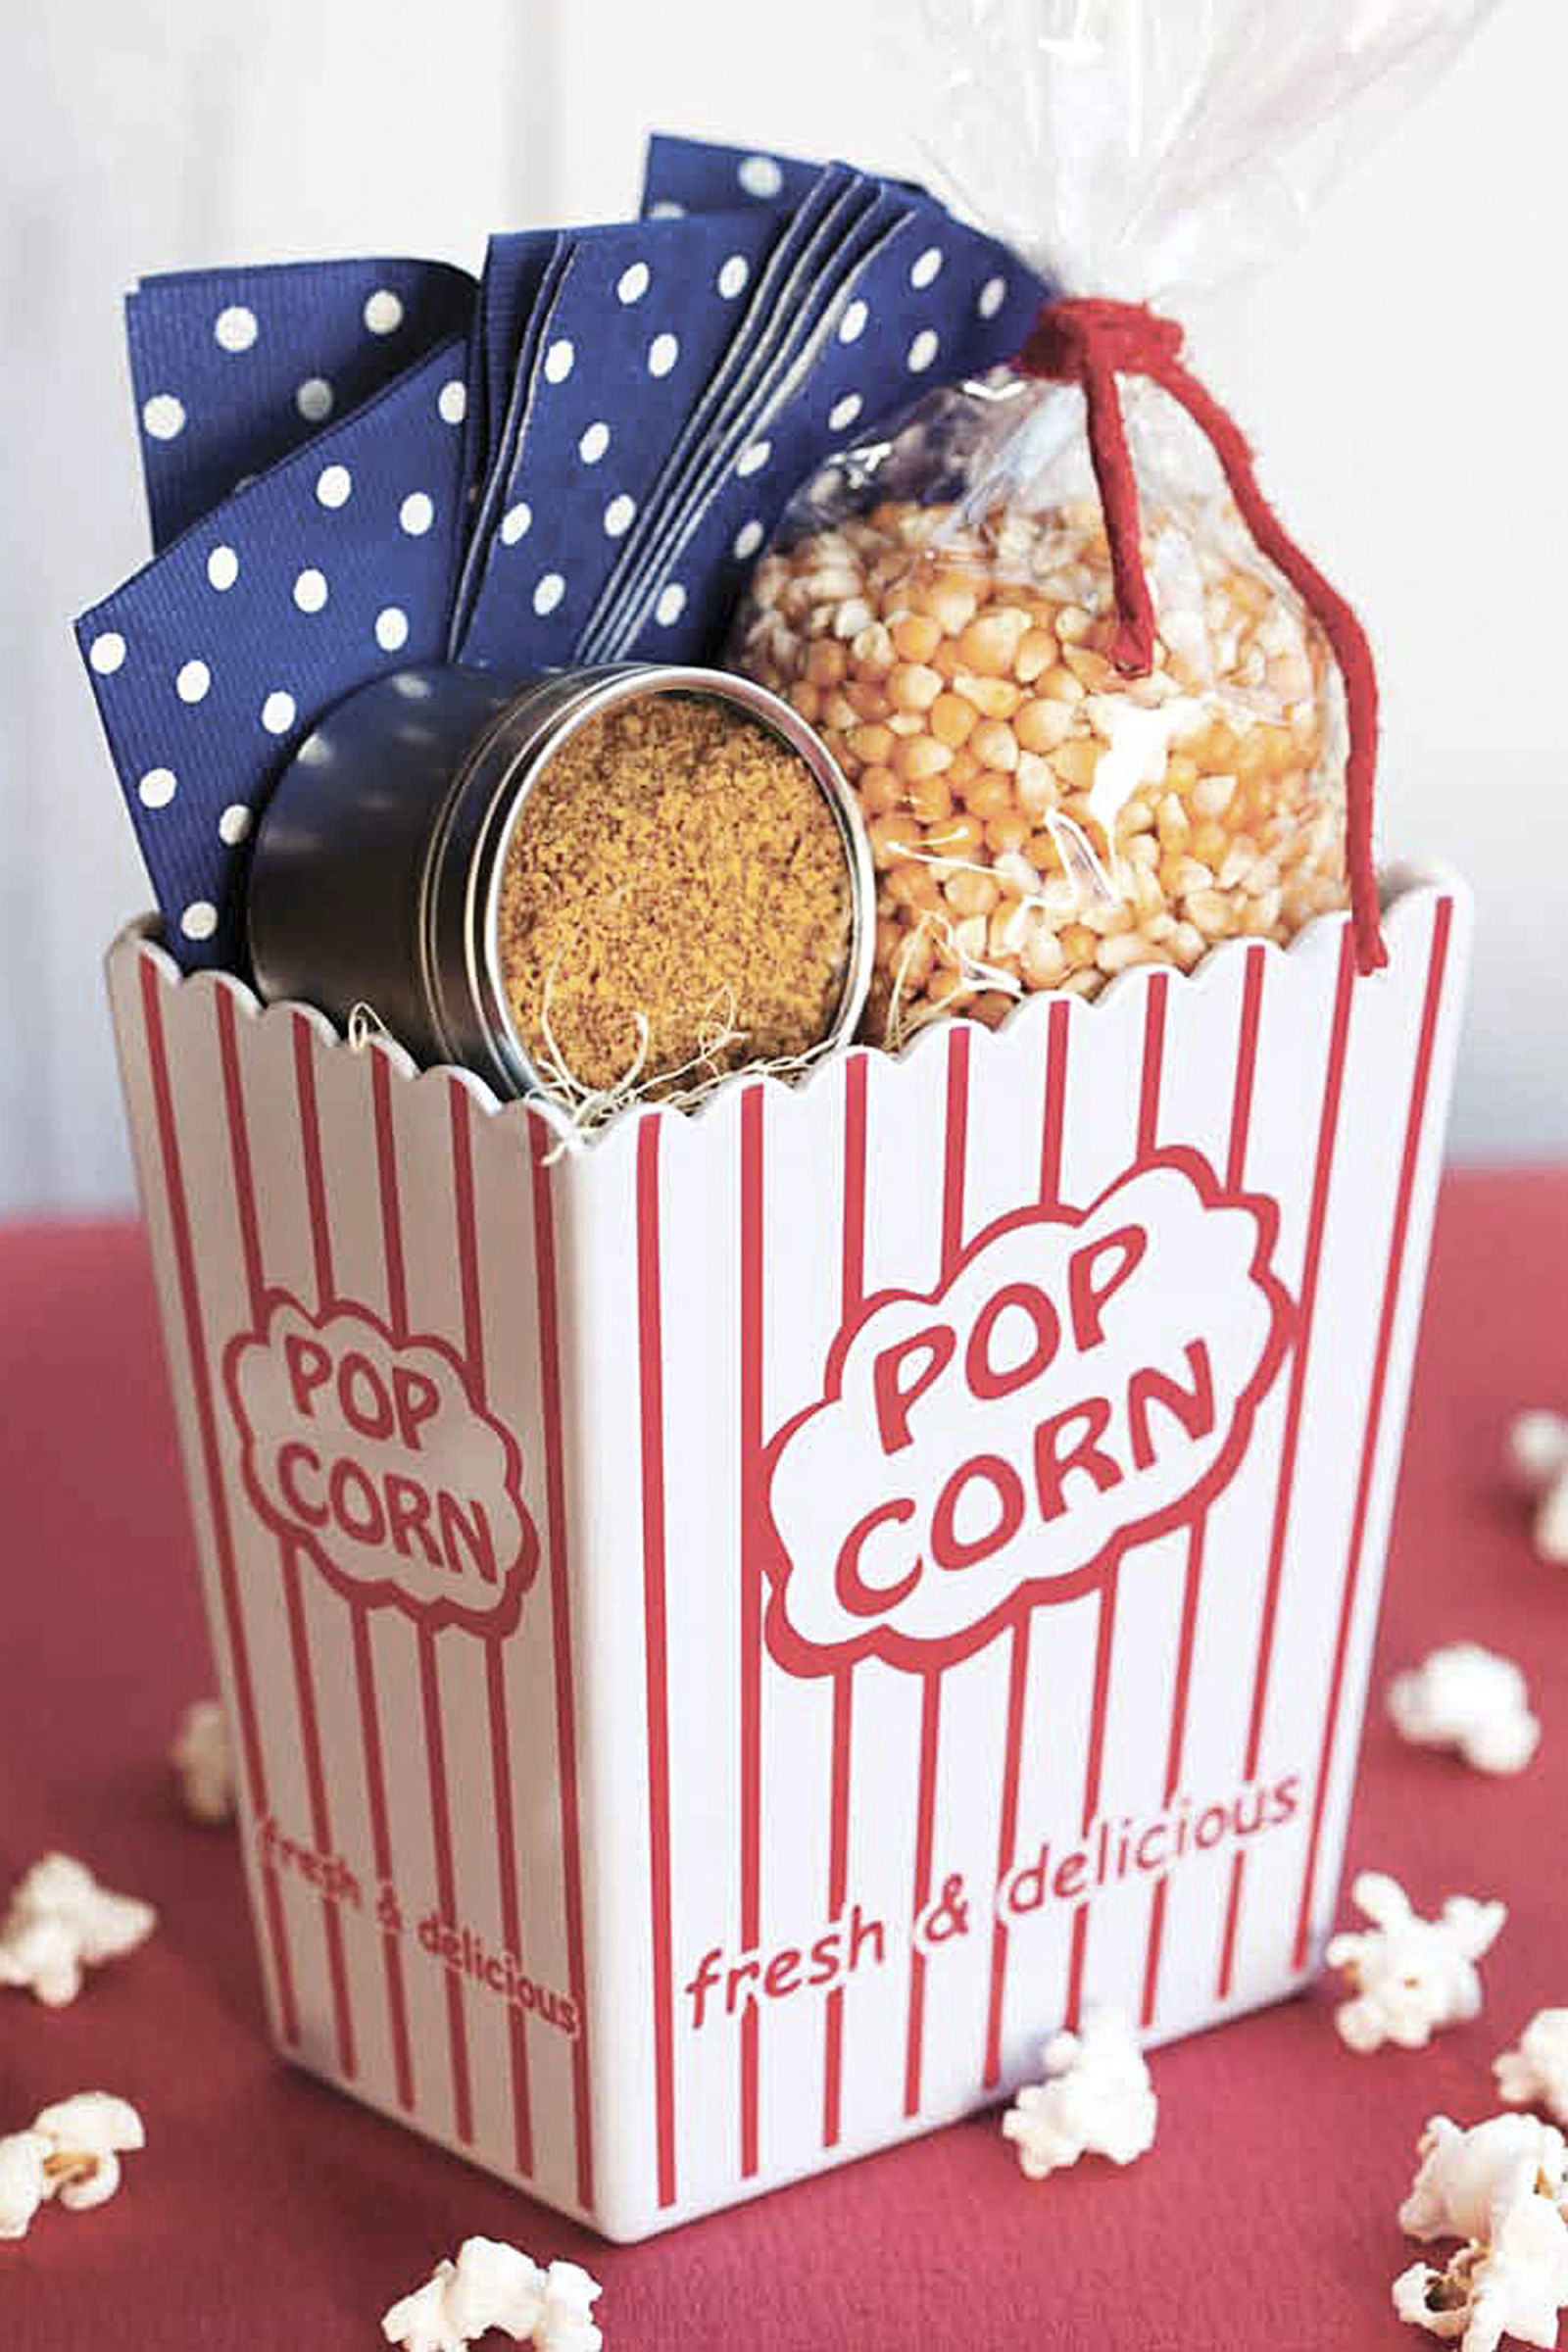 How to make gift cards more special: Drop your gift card into a DIY bucket of popcorn like this by Country Living.